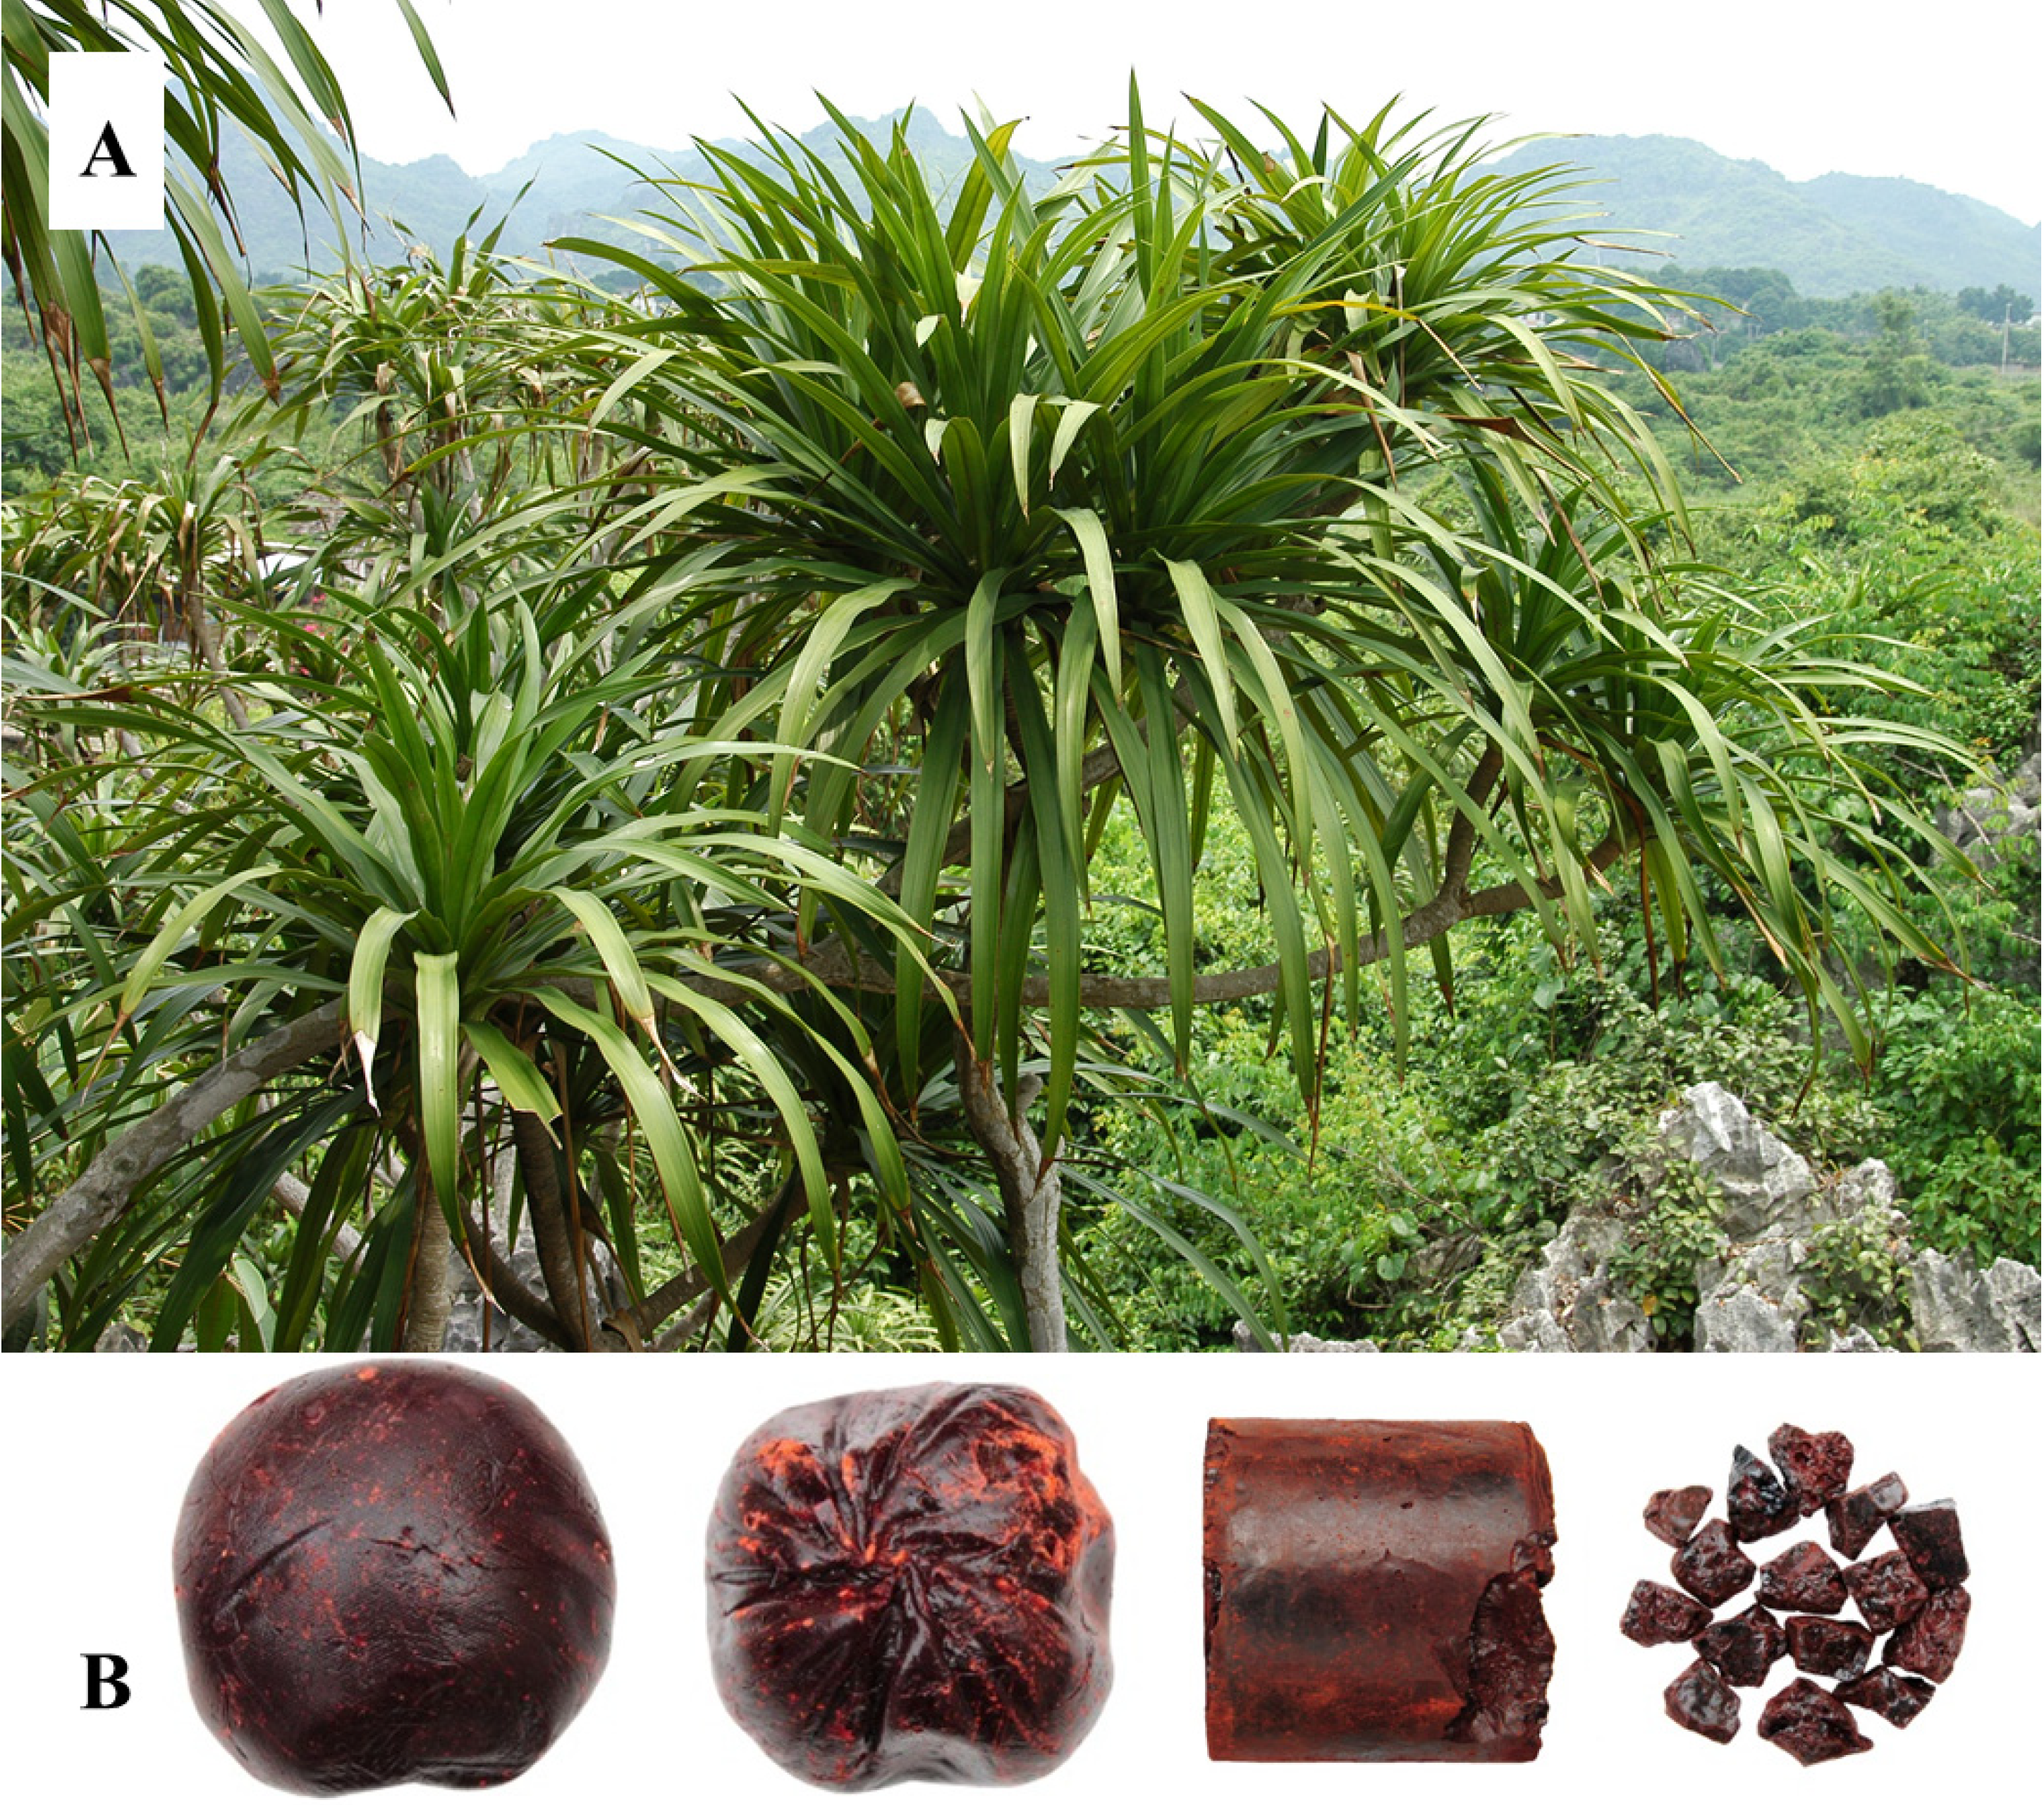 Molecules Free Full Text A Systematic Review Of The Botanical Phytochemical And Pharmacological Profile Of Dracaena Cochinchinensis A Plant Source Of The Ethnomedicine Dragon S Blood Html